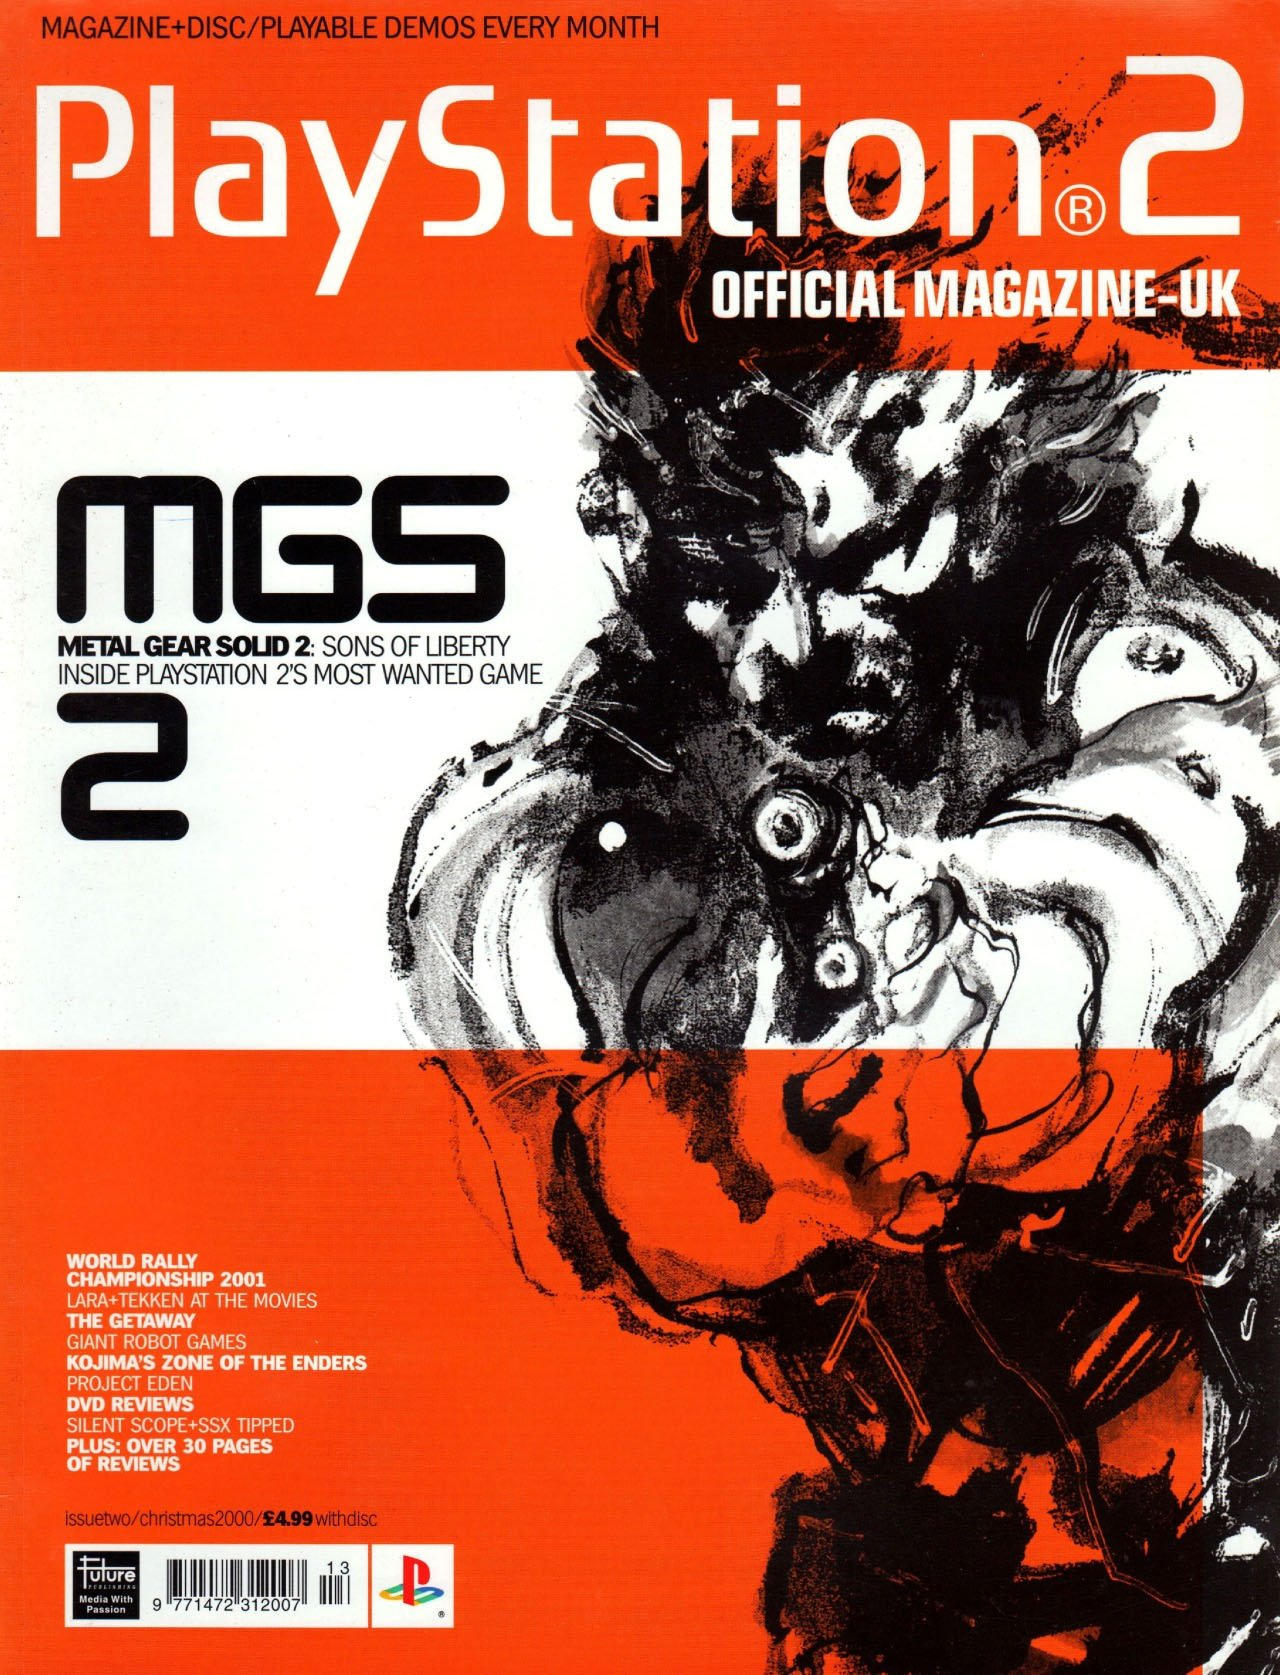 Official Playstation 2 Magazine UK 002 (Christmas 2000)